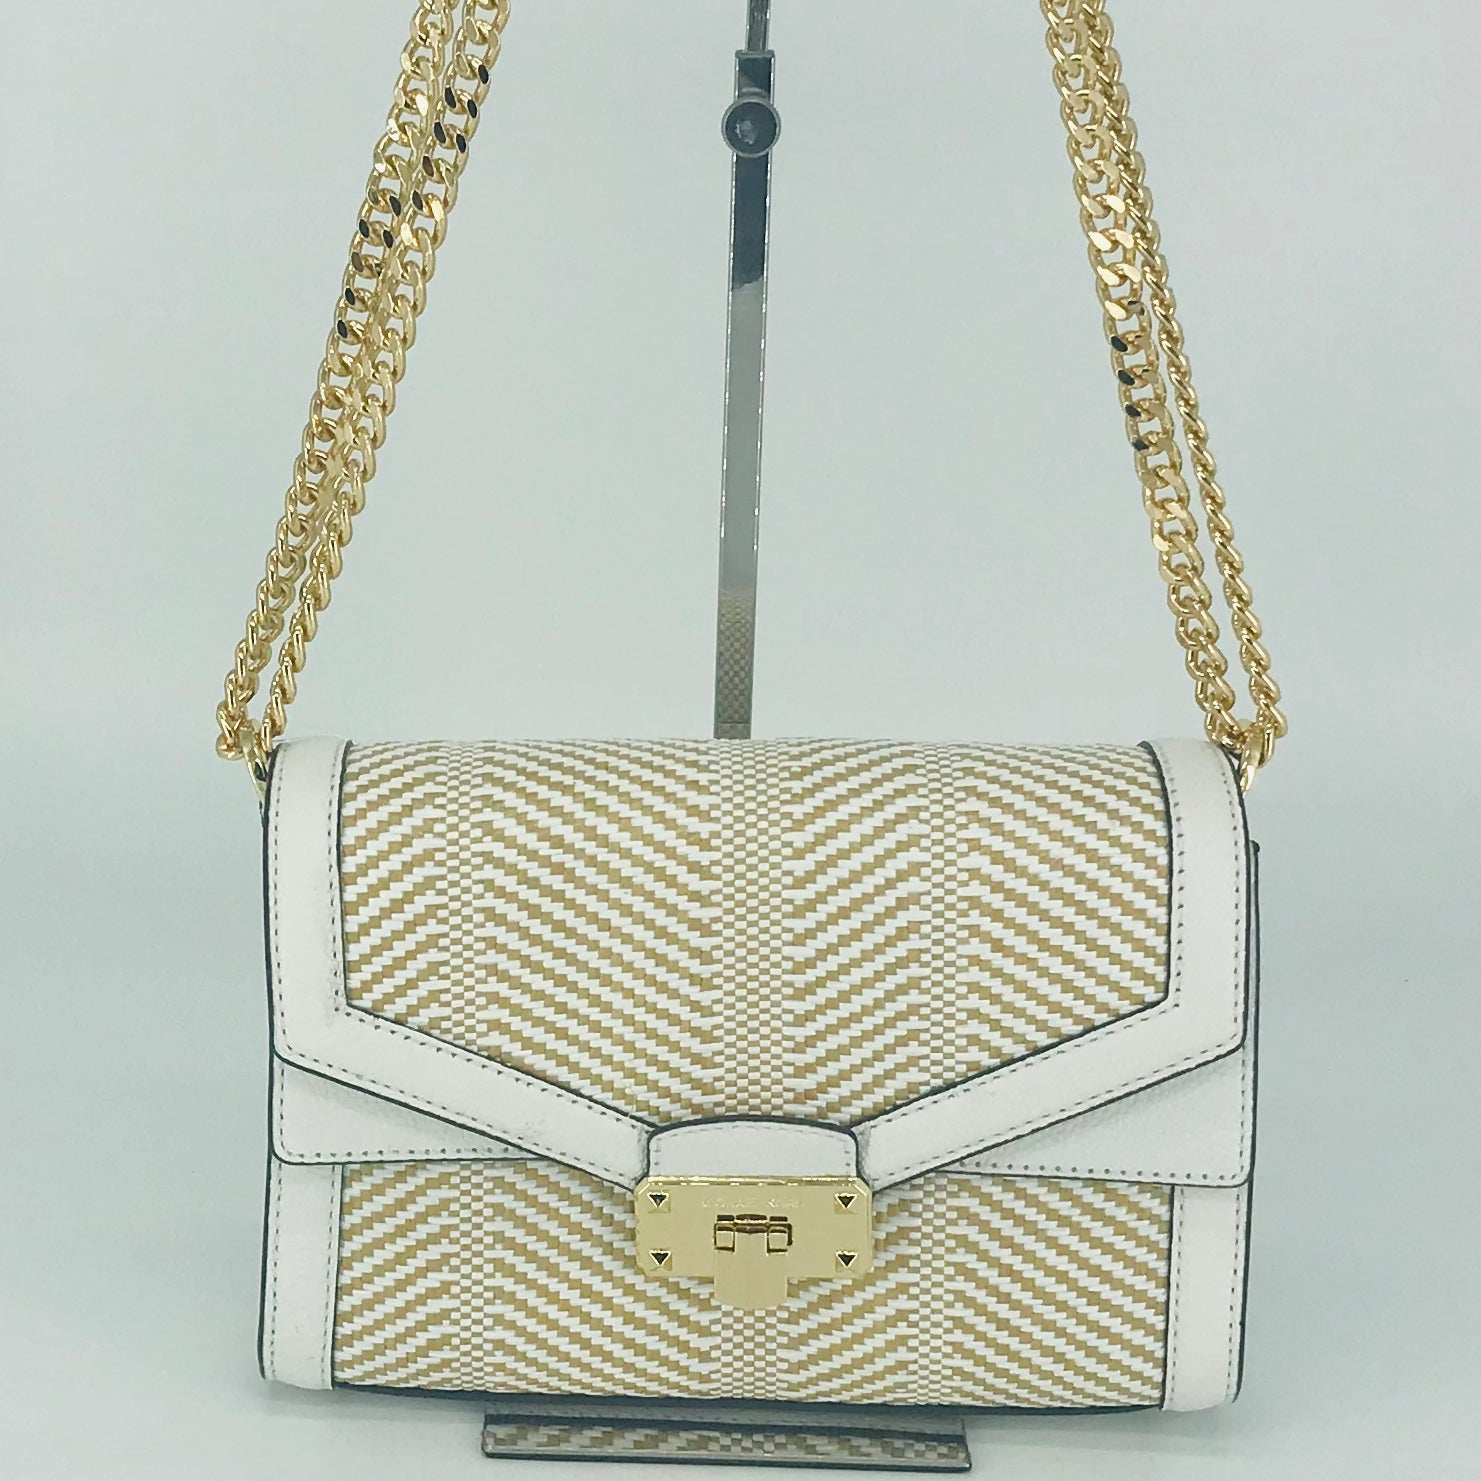 Michael Kors Kinsley Weaved Shoulder Flap Bag